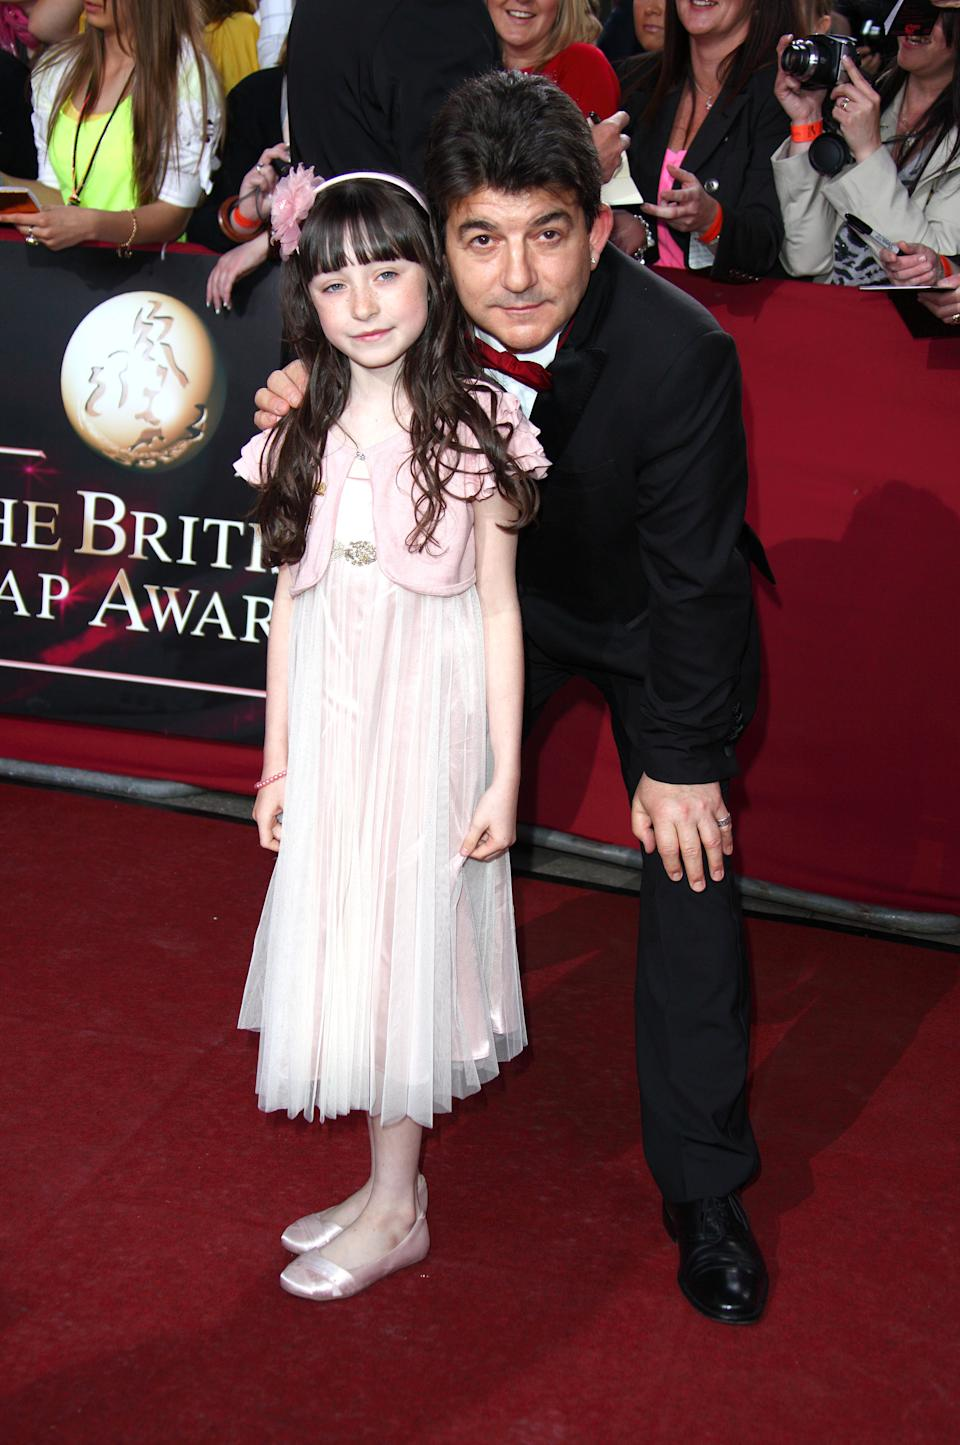 John Altman and Molly Conlin attend the British Soap Awards at BBC Television Centre on May 9, 2009 in London, England.  (Photo by Mike Marsland/WireImage)